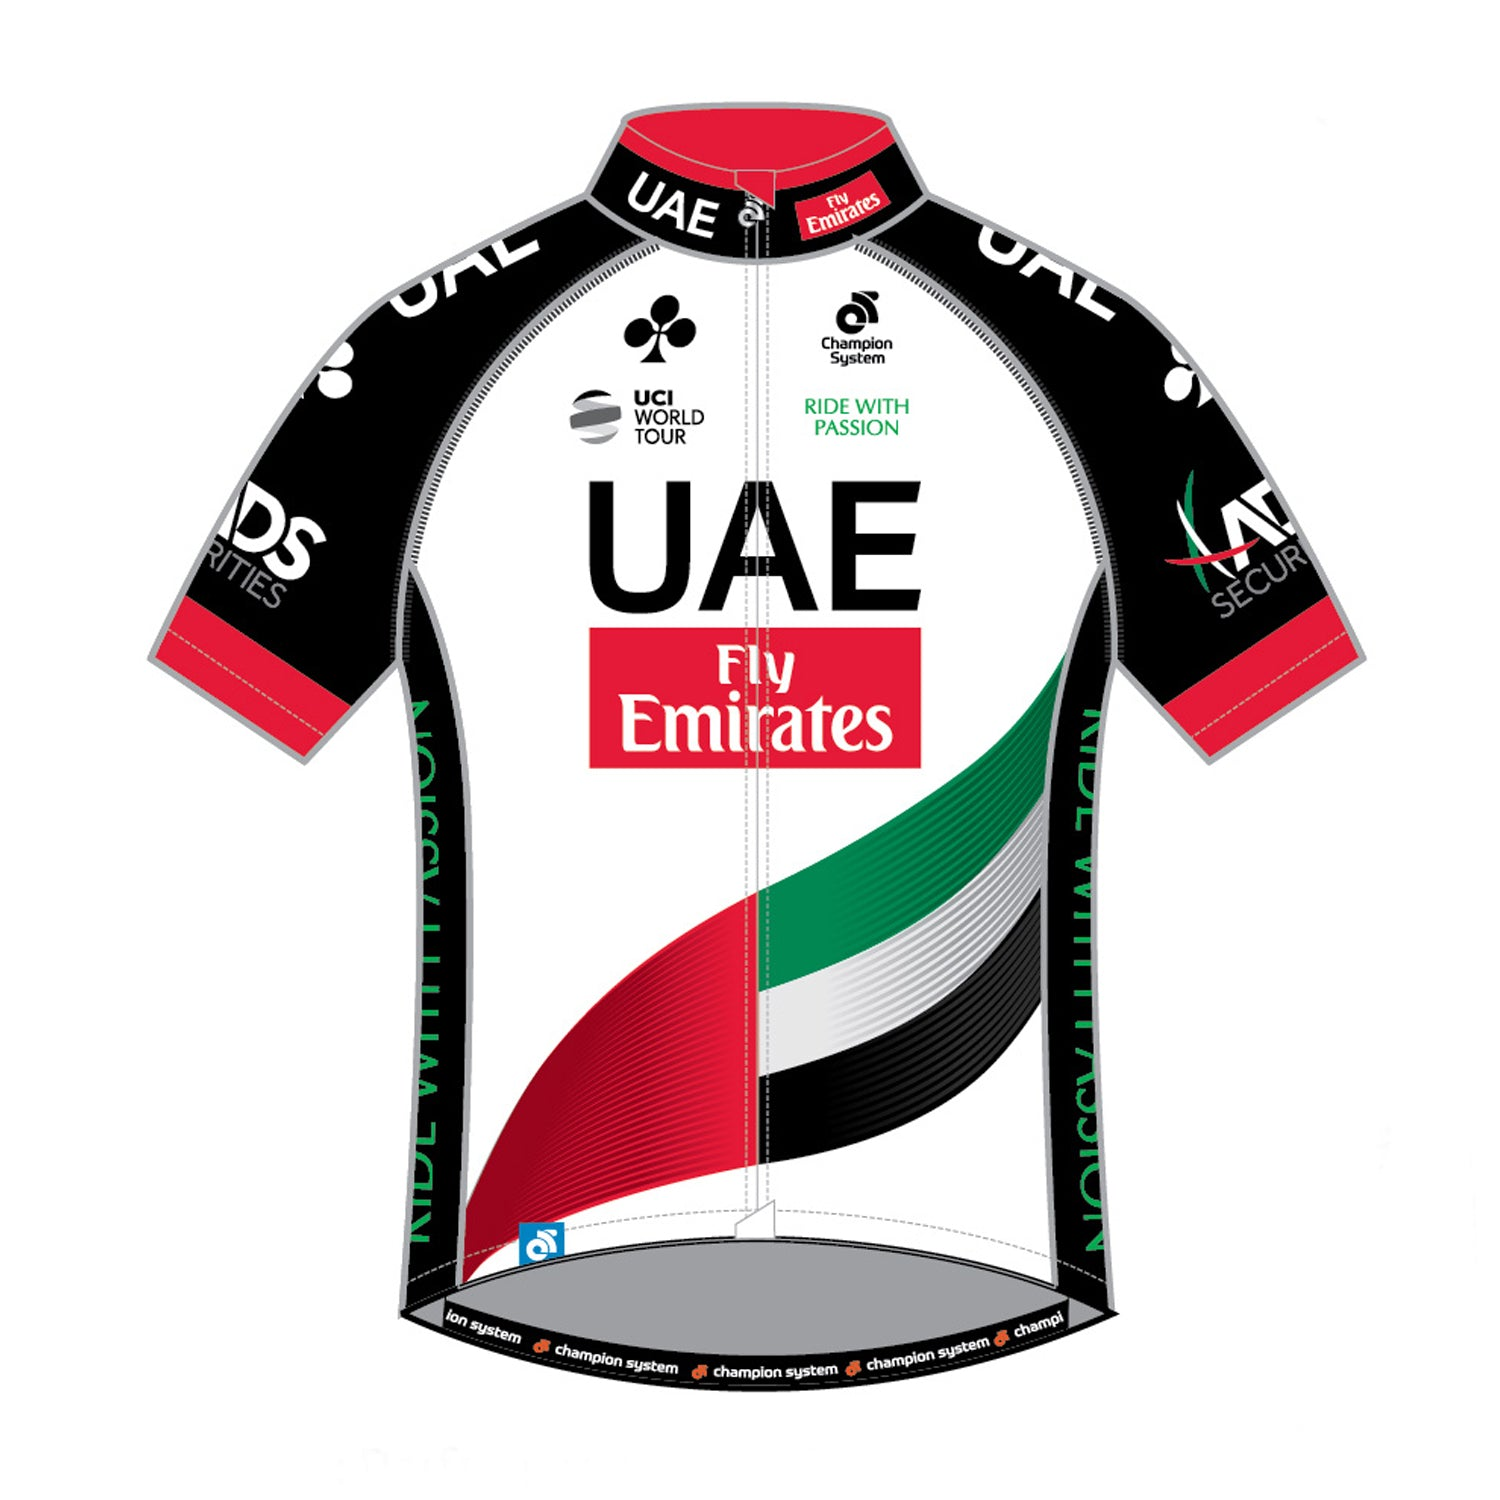 U.A.E. Team Emirates Mens Tech Pro Short Sleeve Cycling Jersey - Club Cut.